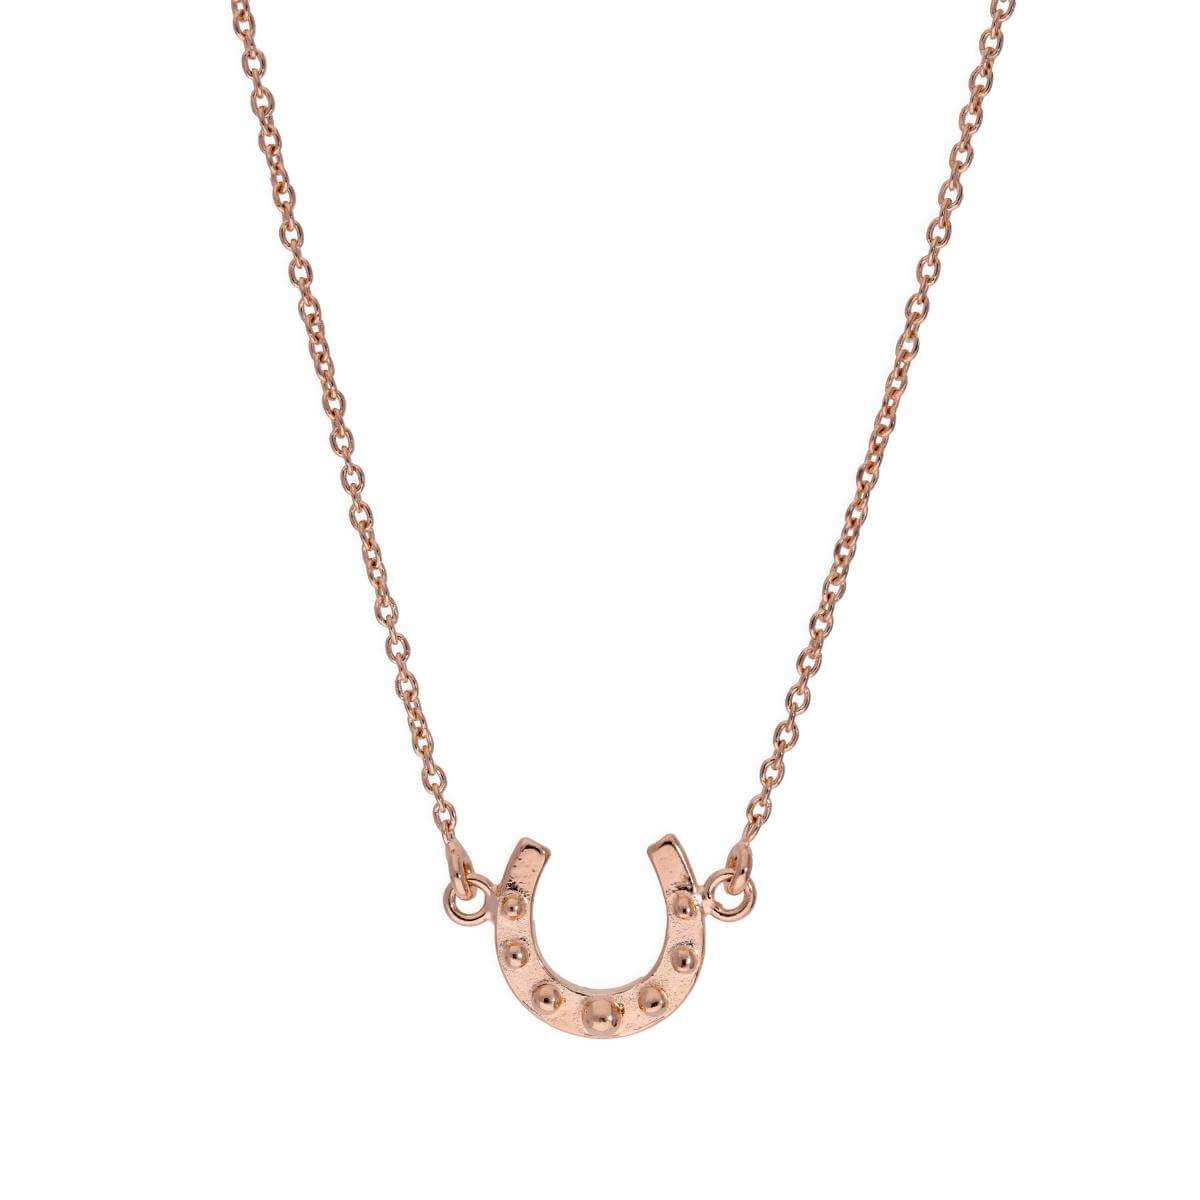 Rose Gold Plated Sterling Silver Lucky Horseshoe Necklace